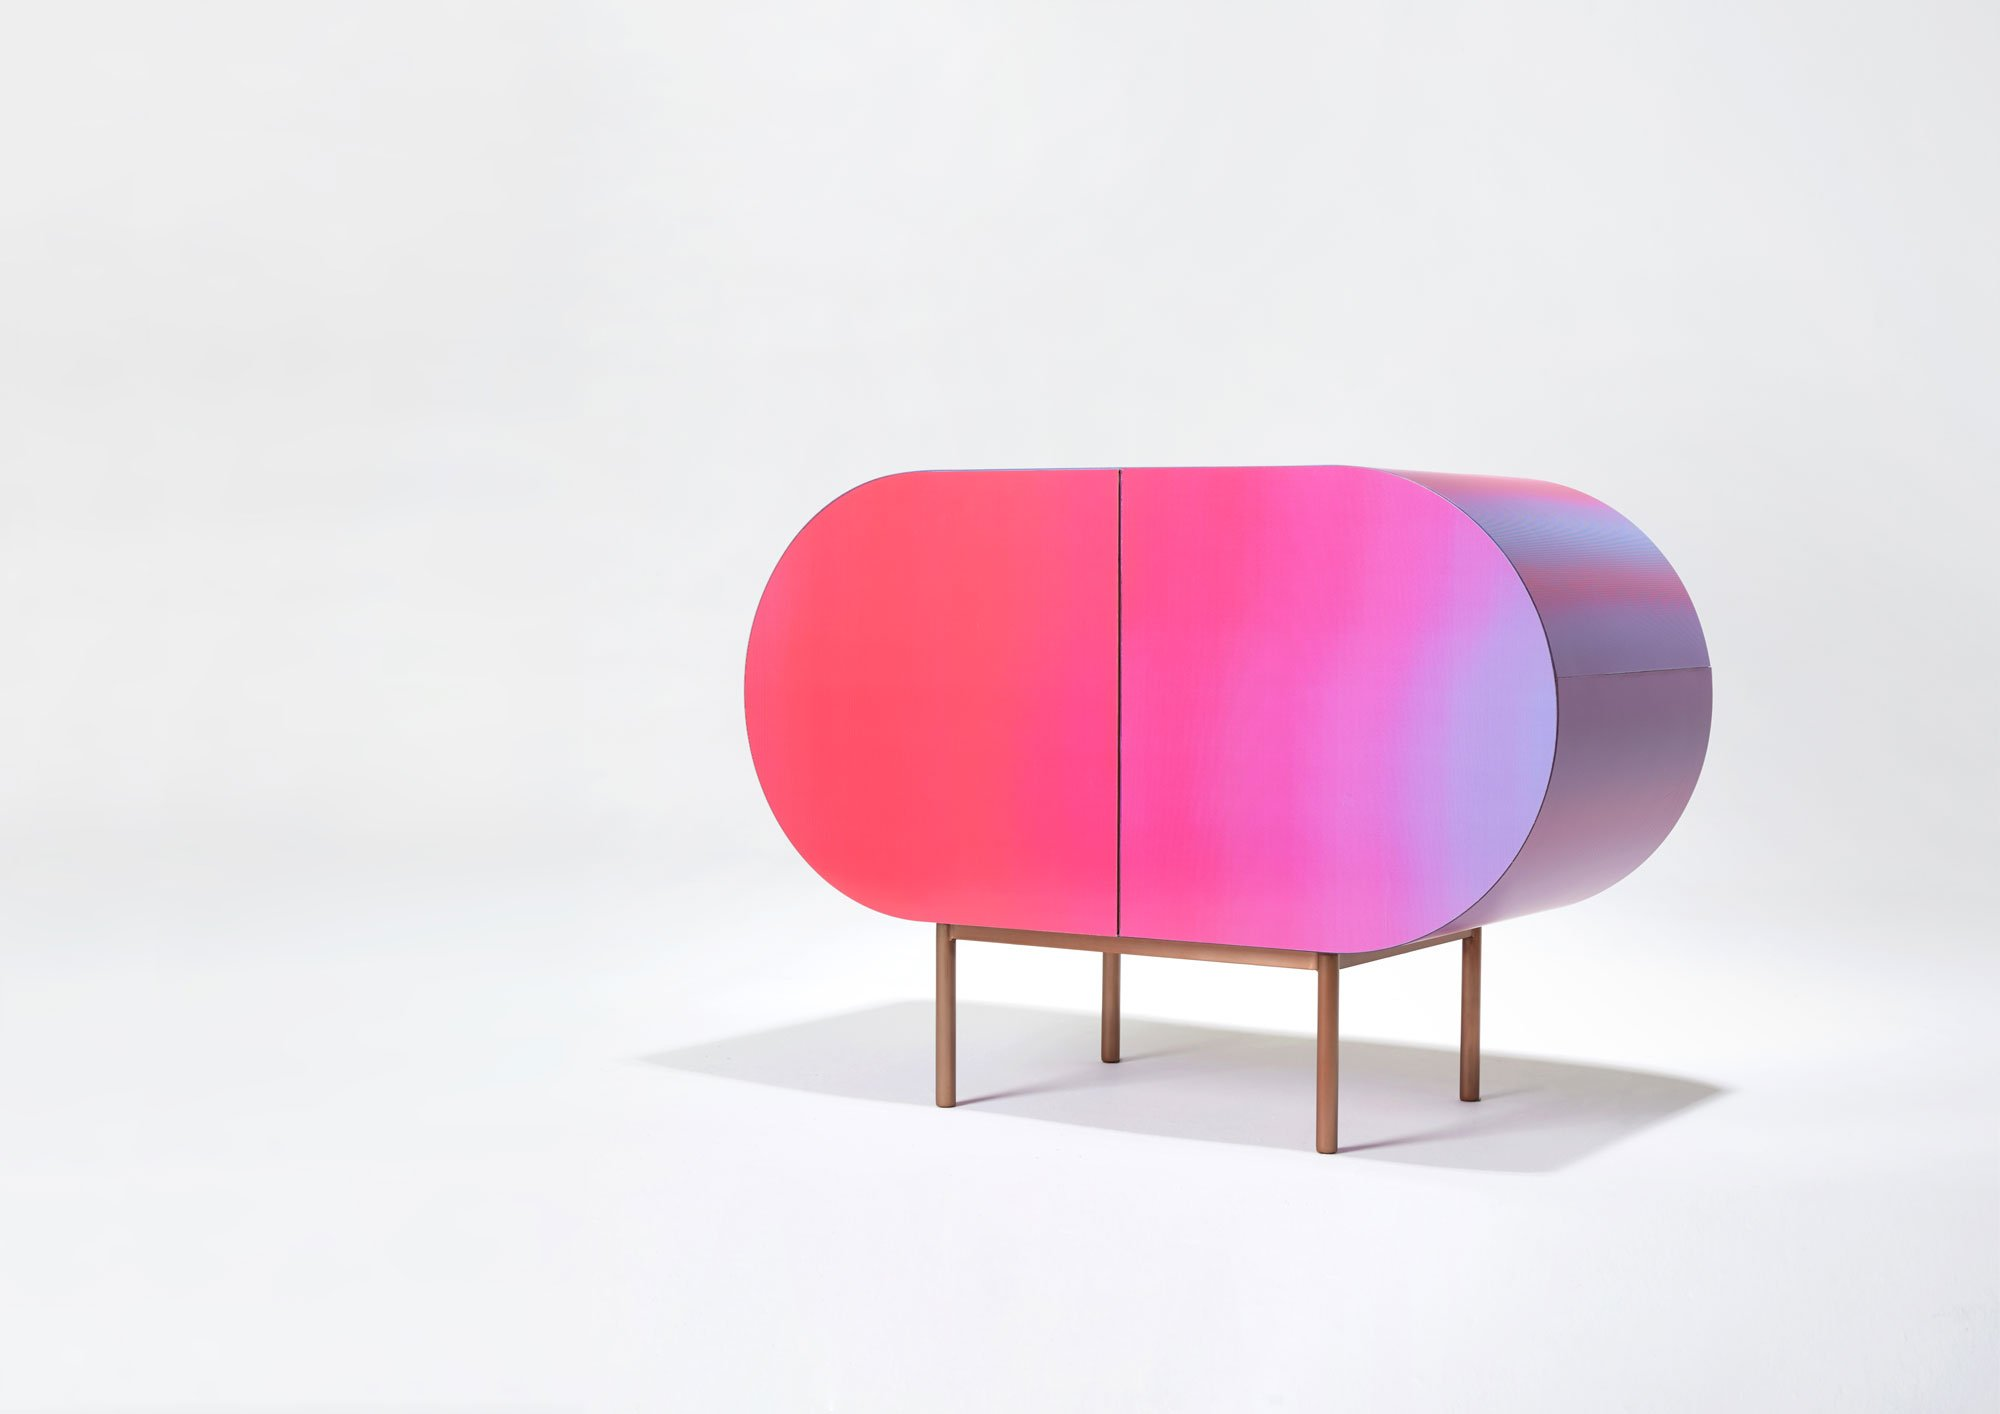 futuristic furniture design. Share This Article Futuristic Furniture Design R